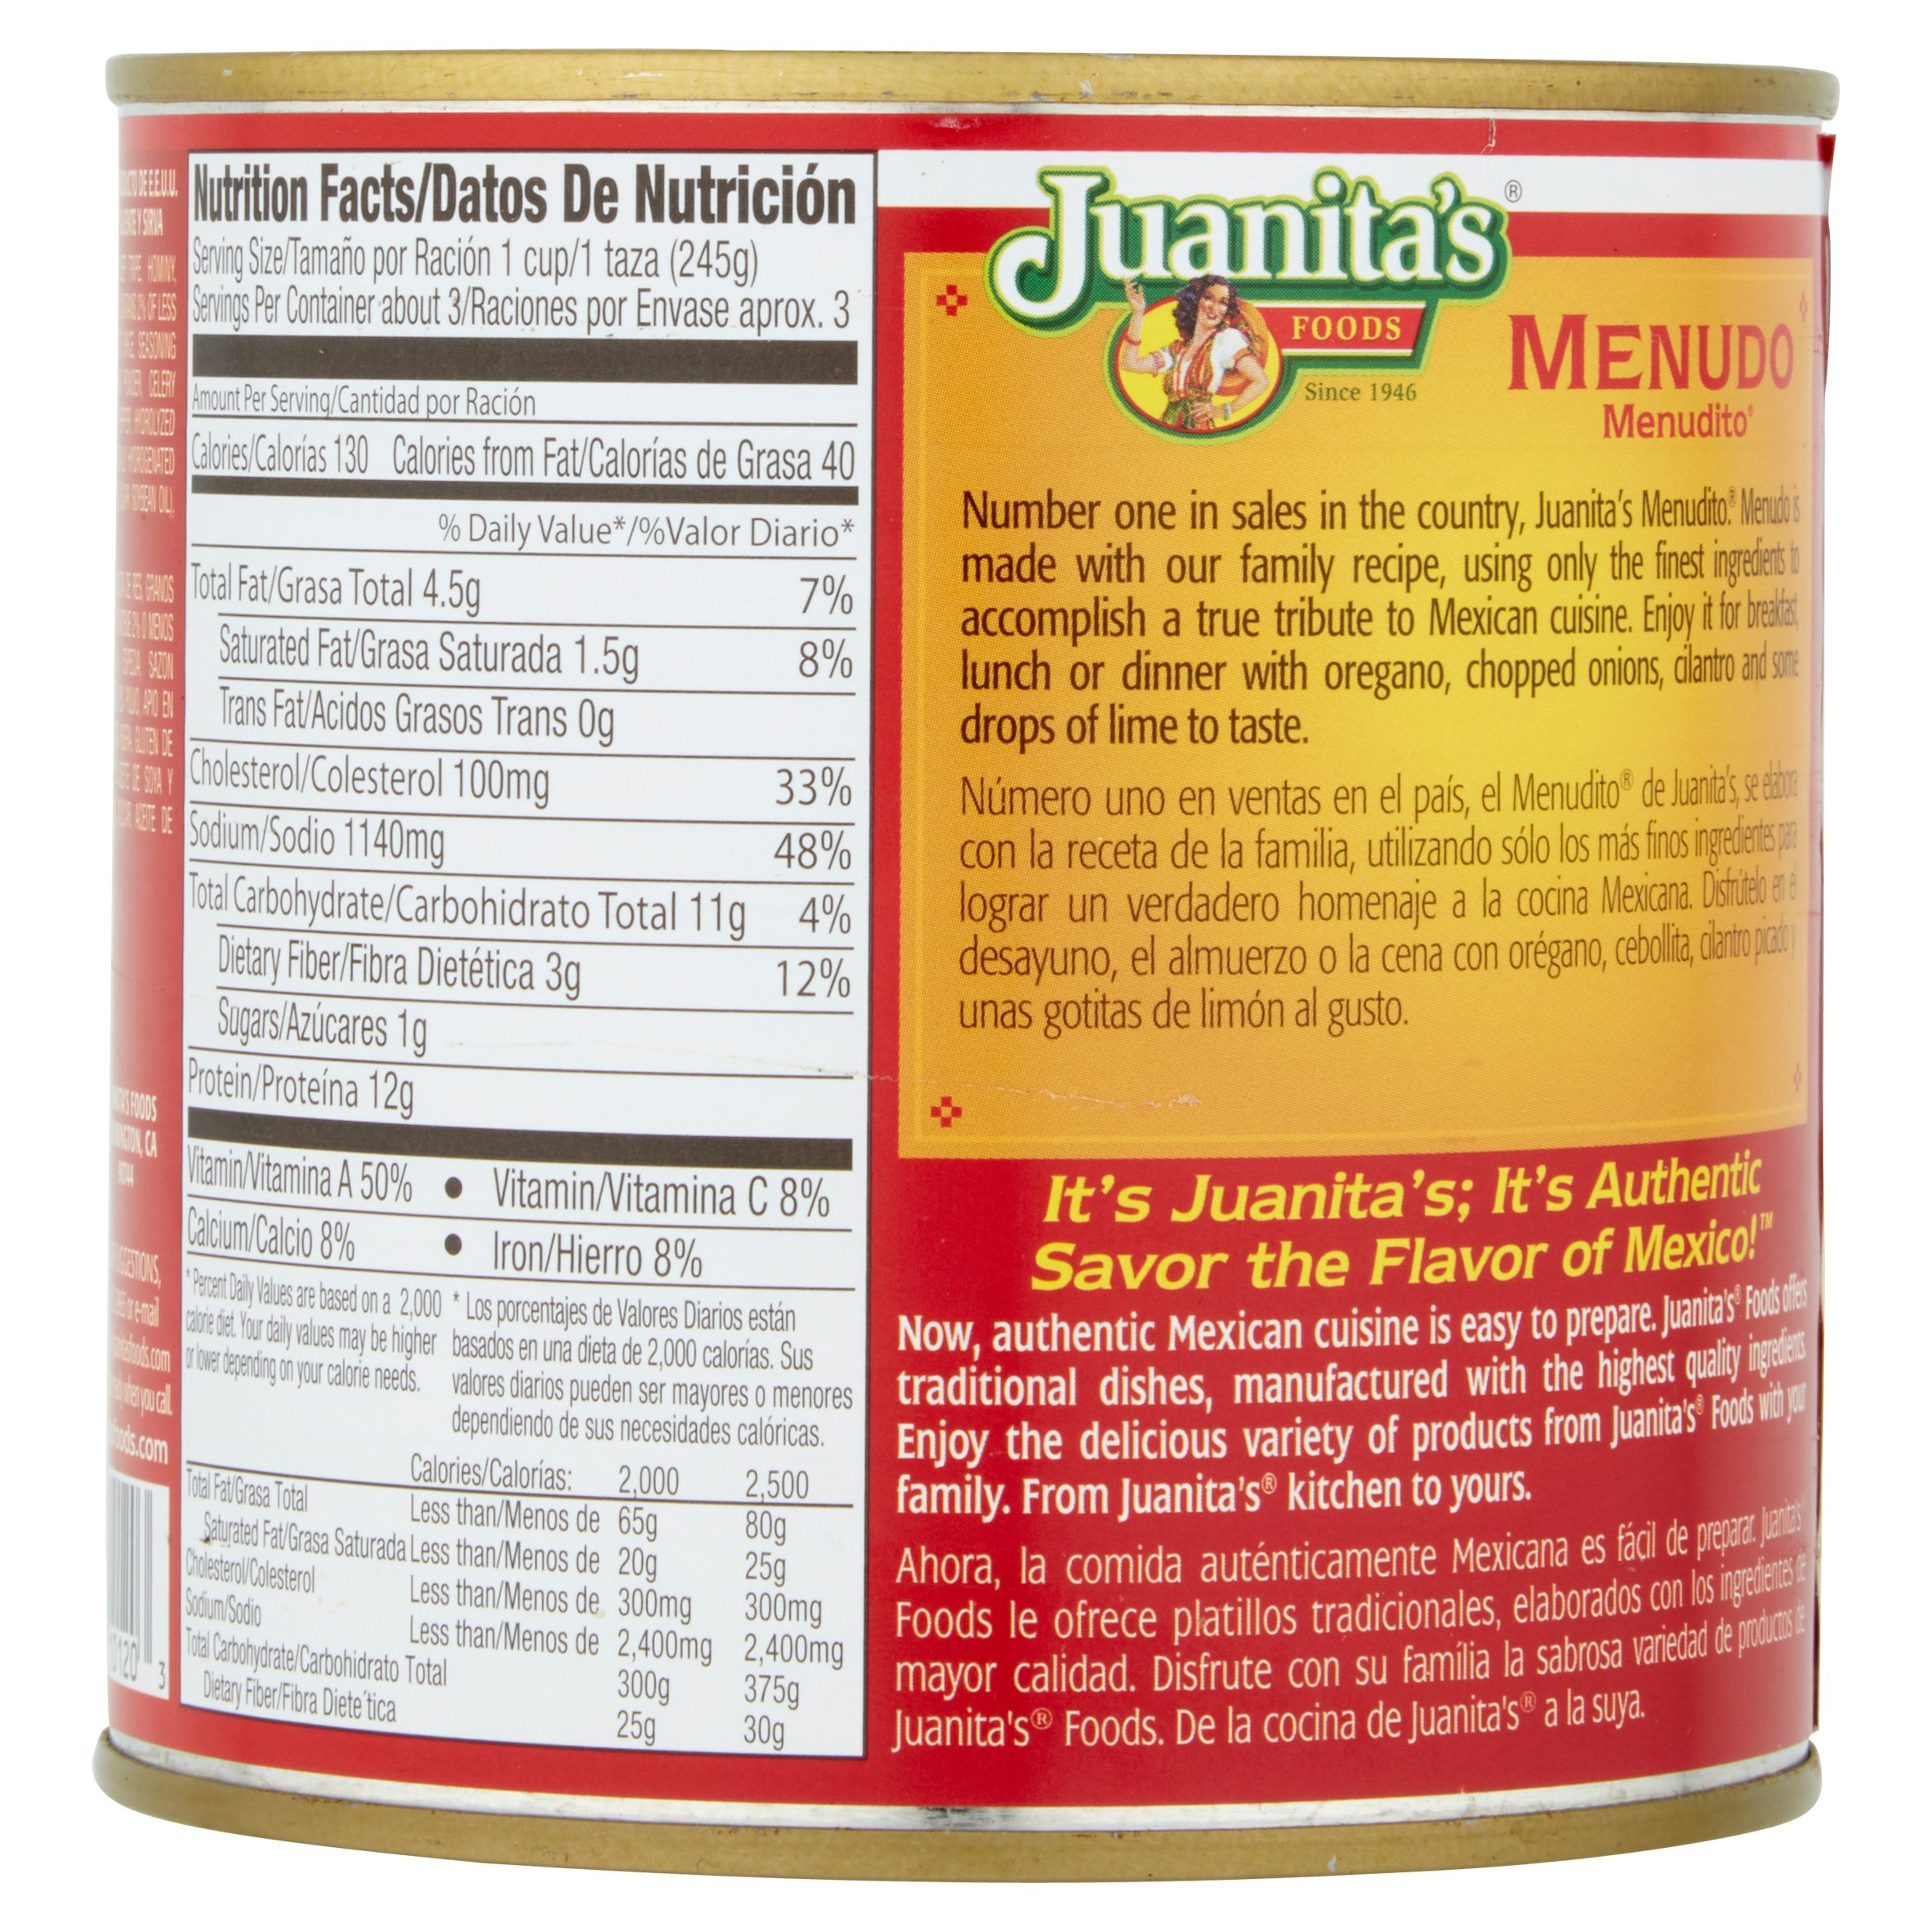 How many calories in menudo images 10